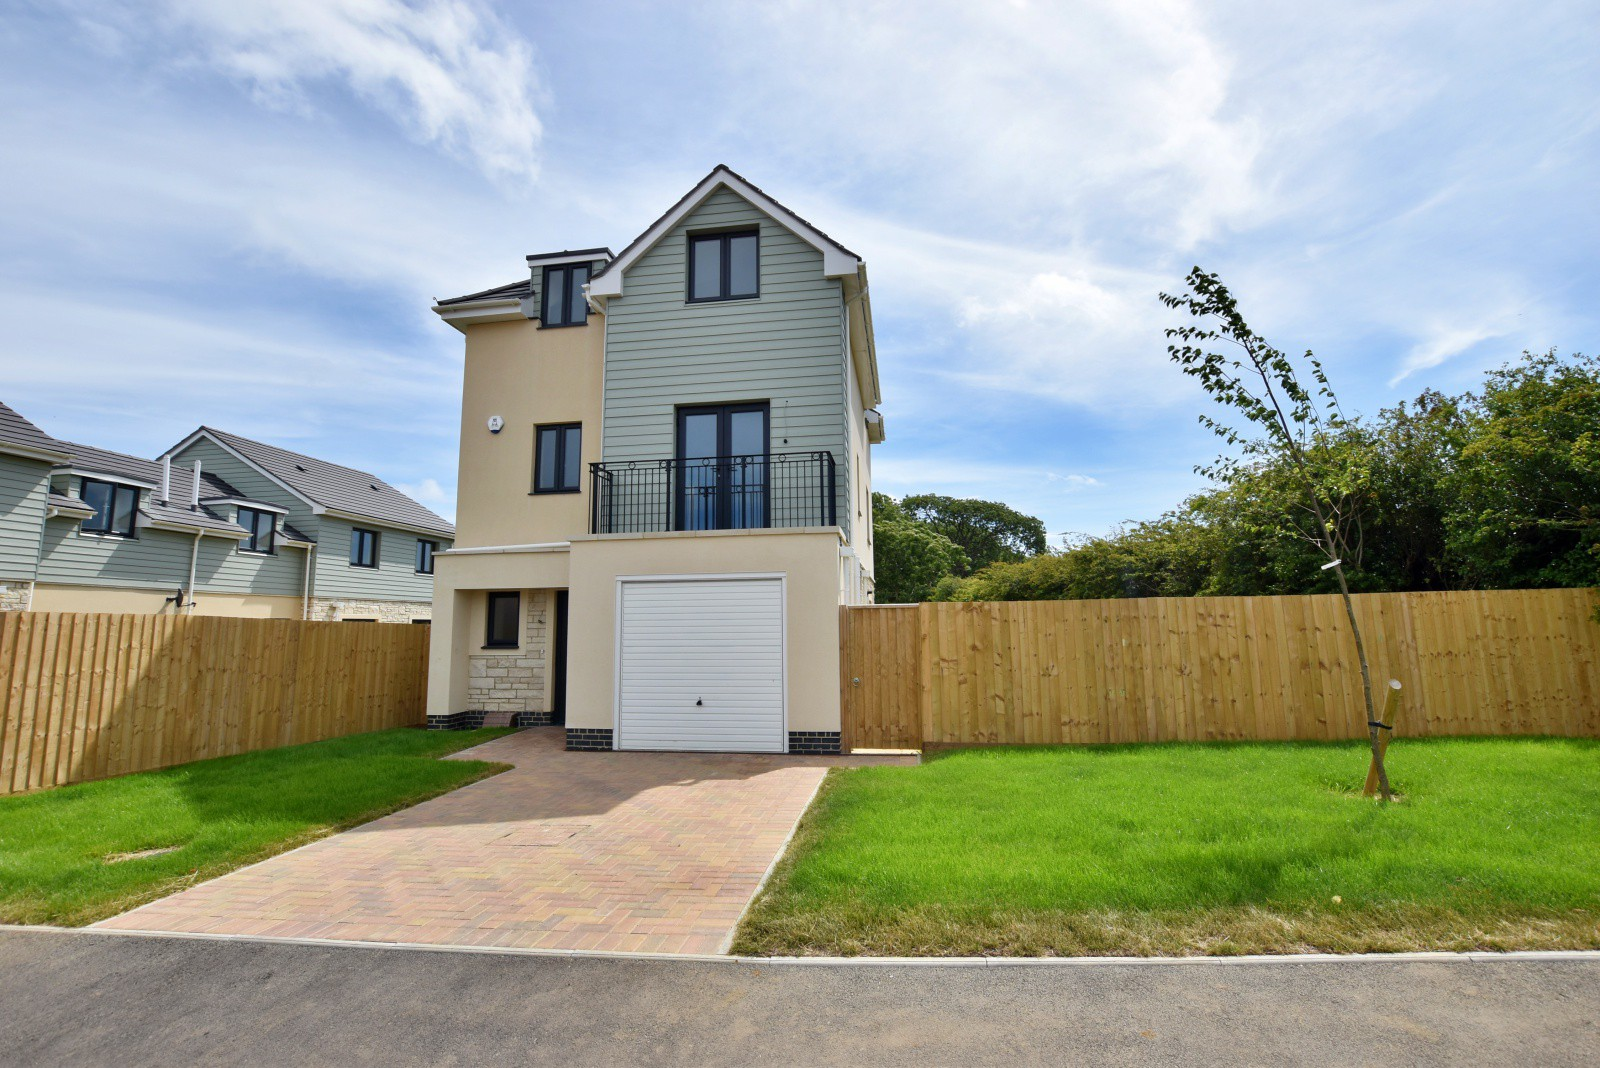 Plot 176 Pemberly, Weymouth